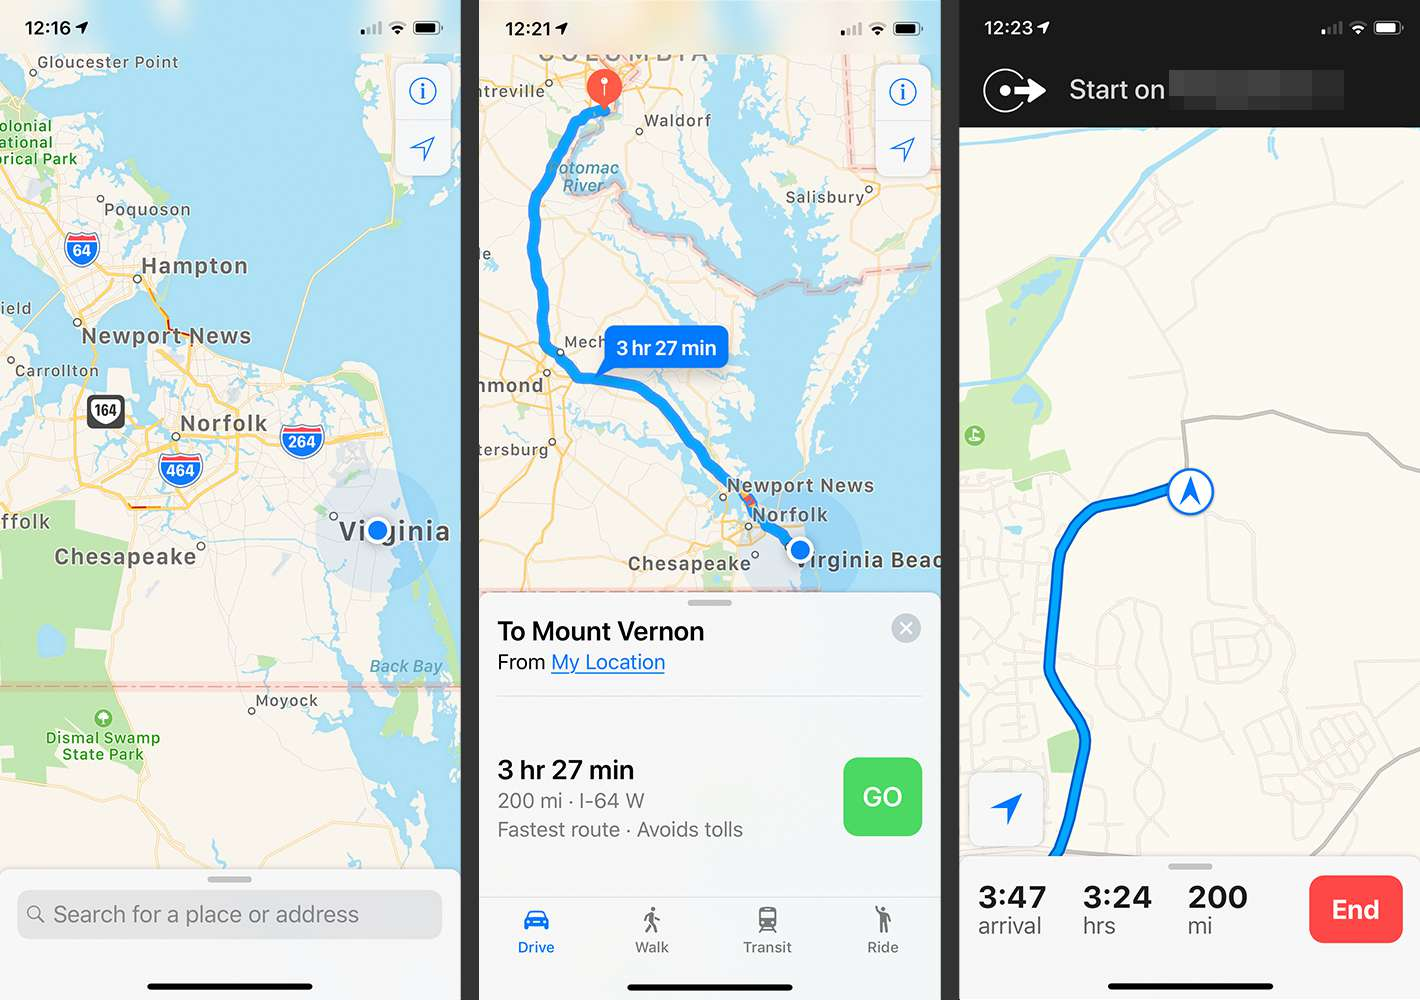 Use Apple Maps to Get Where You Want to Go on maps for hp, maps for desktop, maps for fire phone, maps for powerpoint, maps for sports, maps ipad, maps for android, maps for food, maps for tablets, maps for wordpress, maps for ps3, maps for email, maps for mobile, maps for macbook pro, maps for books, maps for pc, maps for blackberry, maps for linux, maps for business, maps and directions,